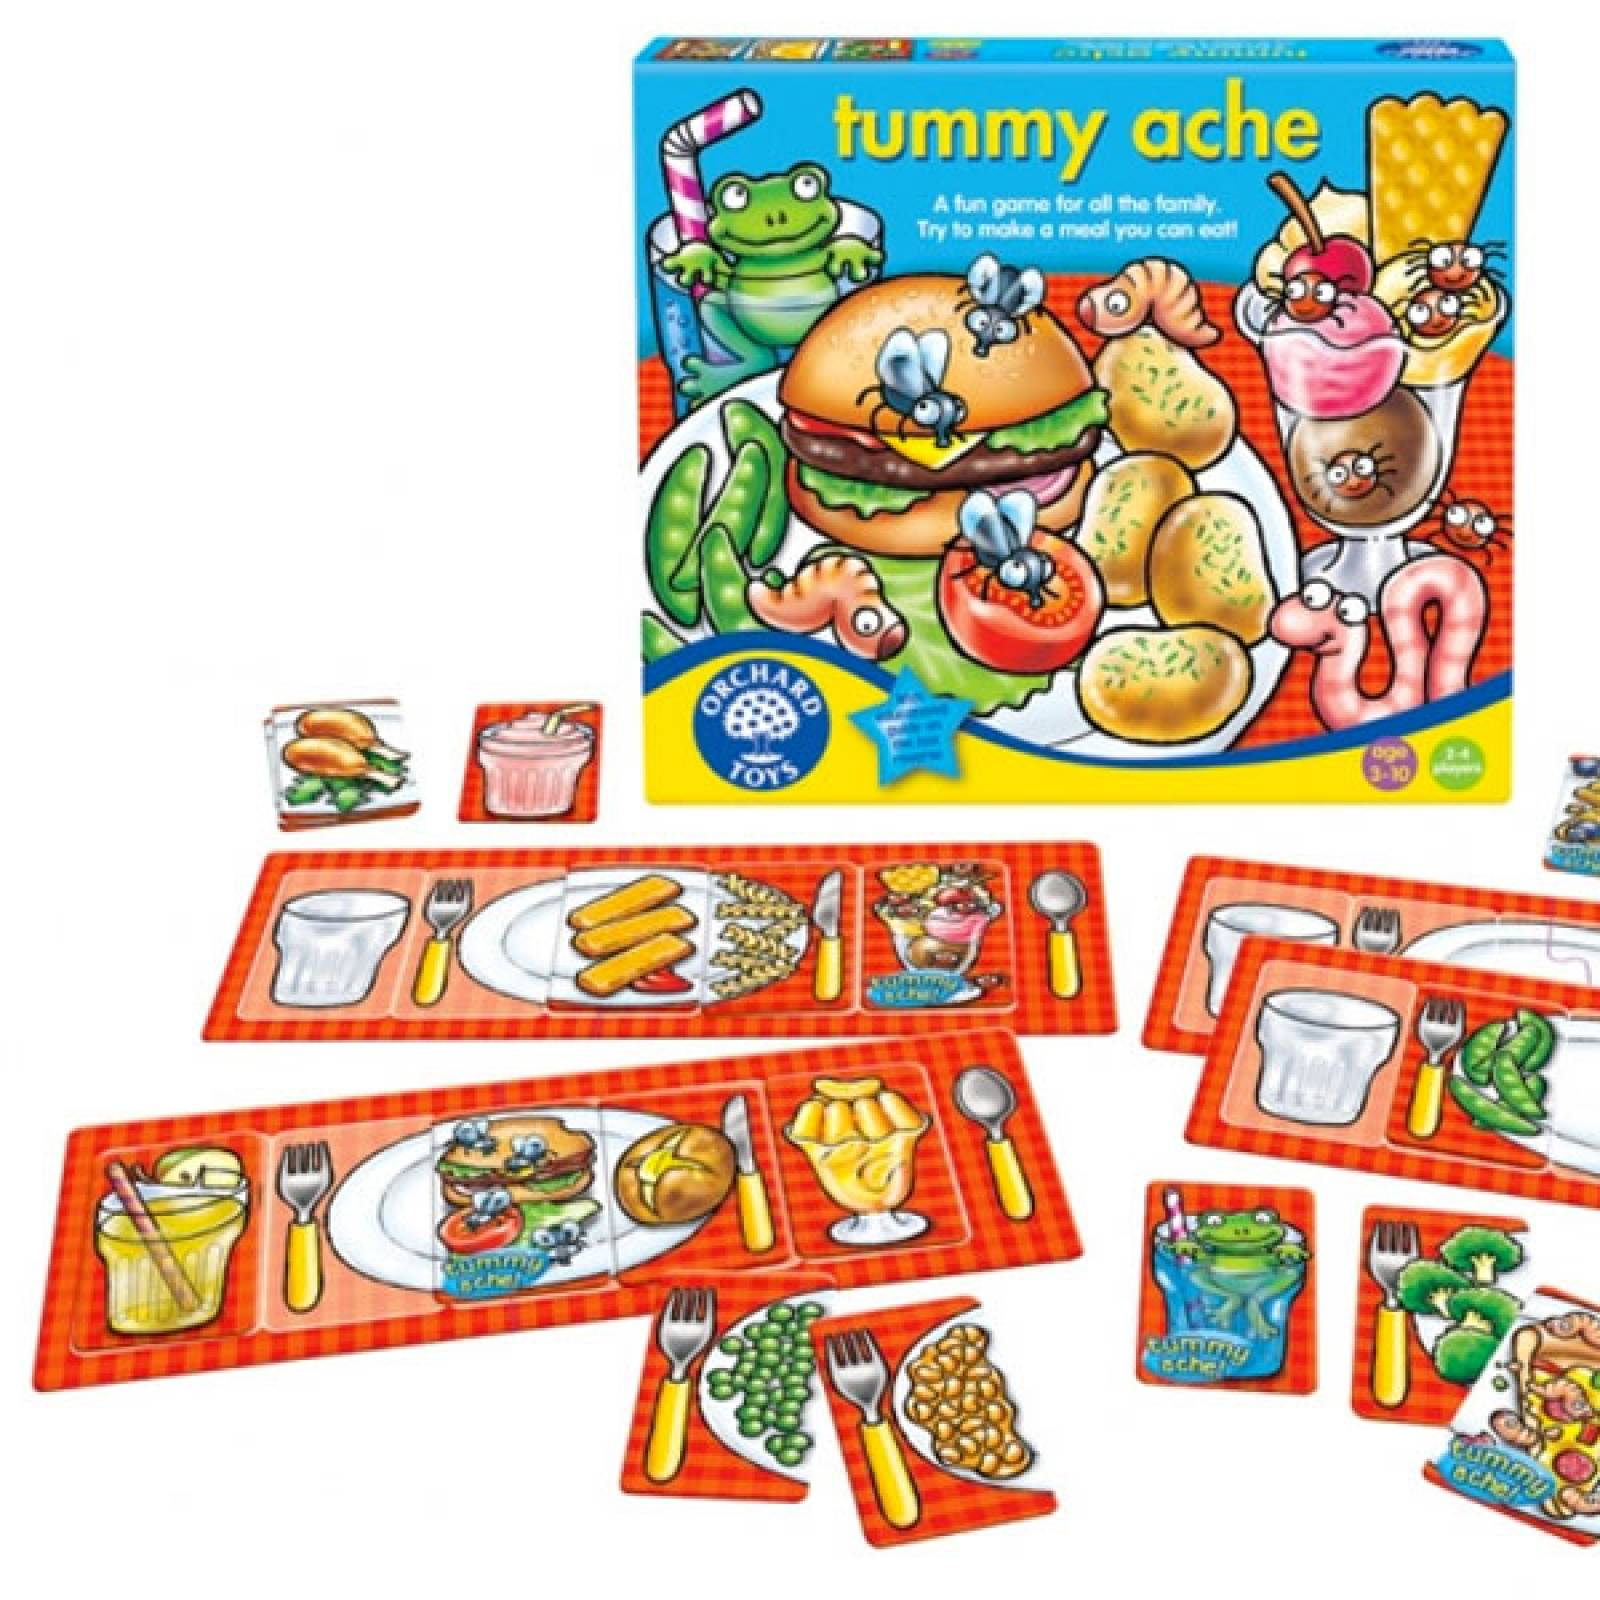 Tummy Ache Game By Orchard Toys 3+ thumbnails